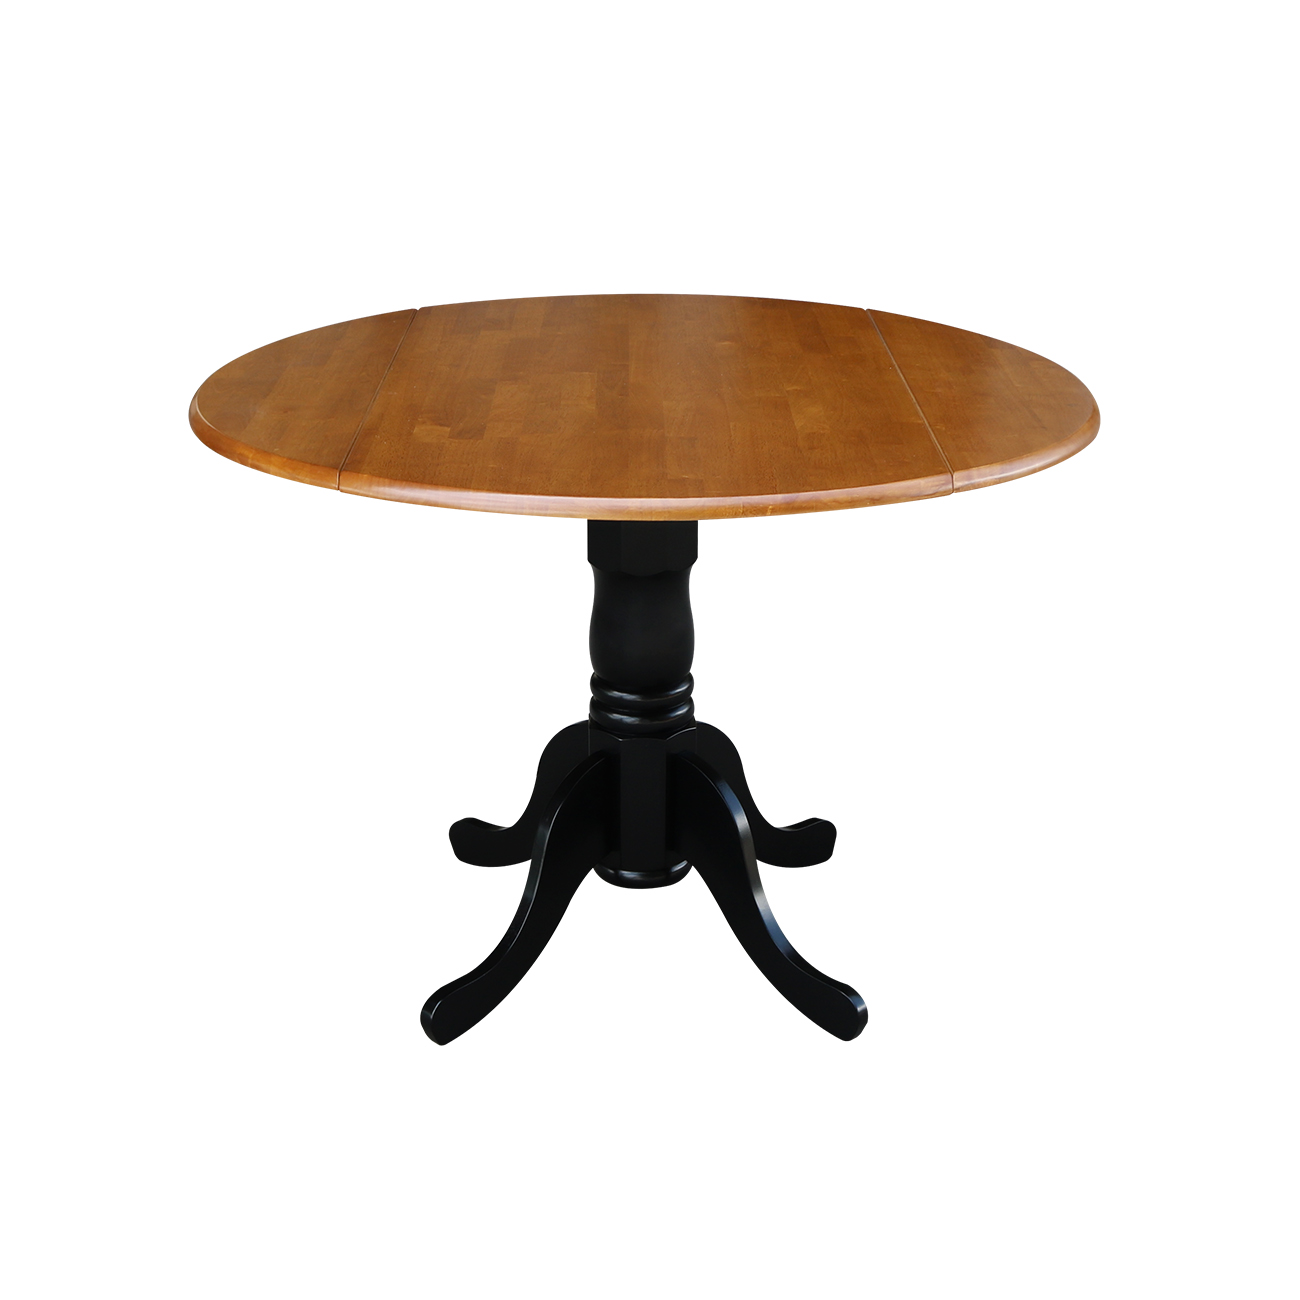 Round Kitchen Table With Drop Leaves, Black / Cherry   Walmart.com